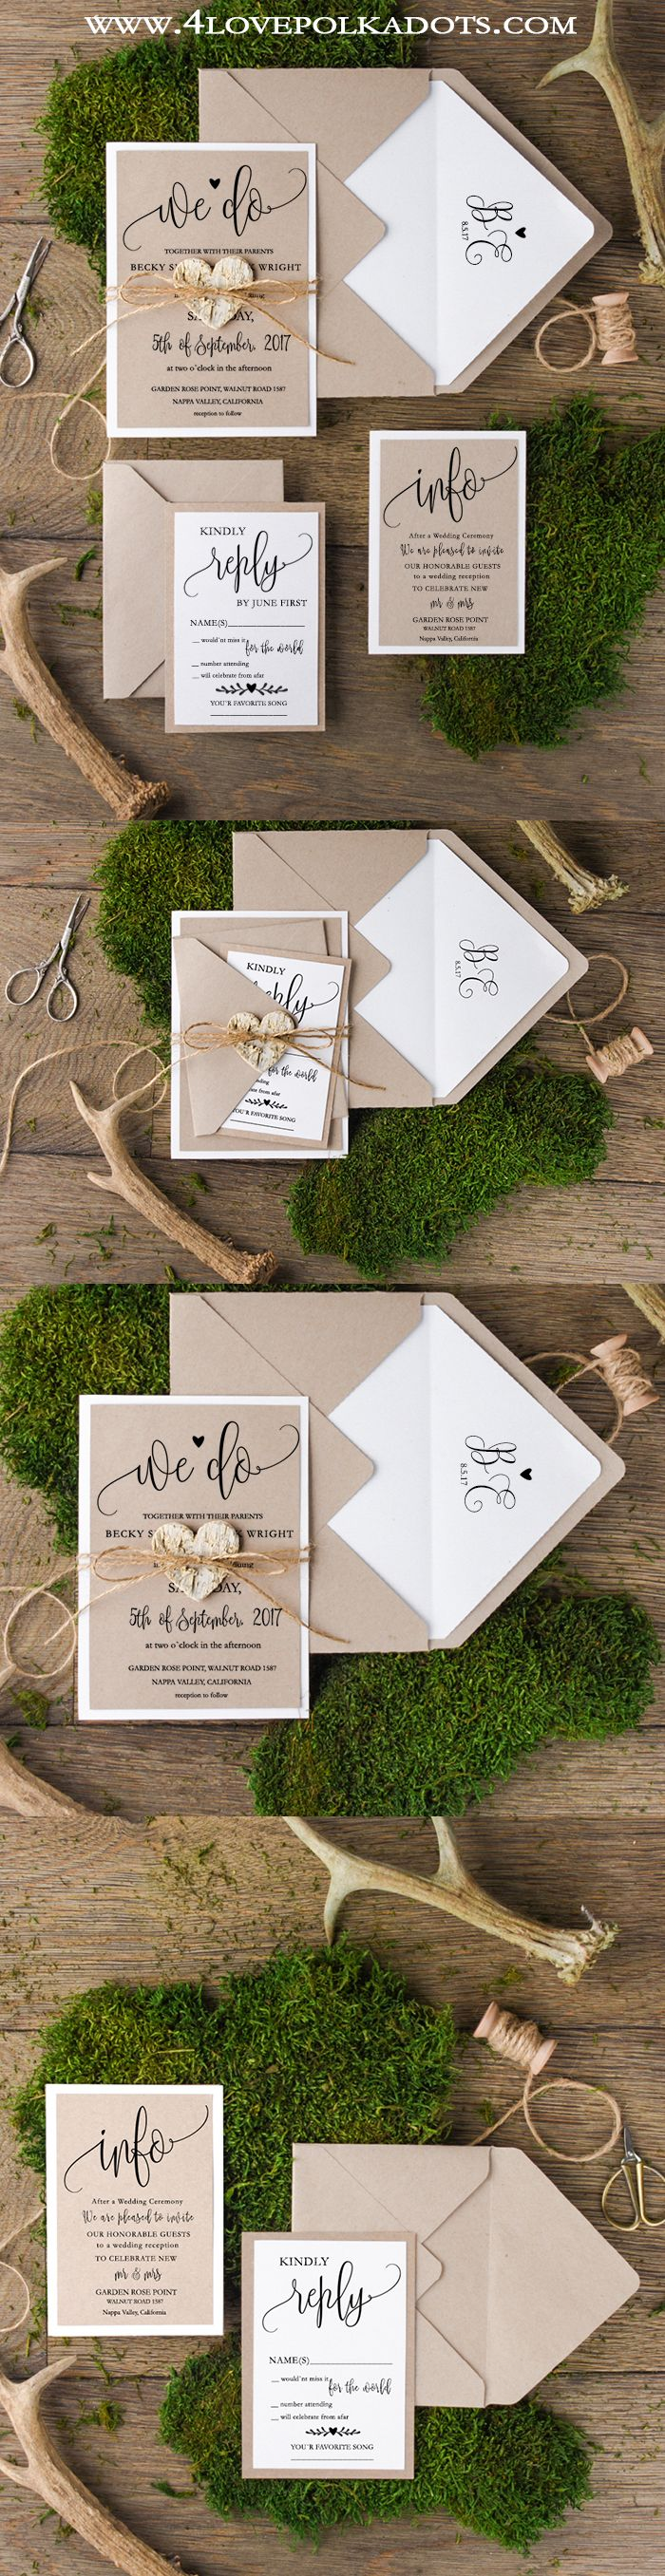 Rustic Wedding Invitations #weddingideas